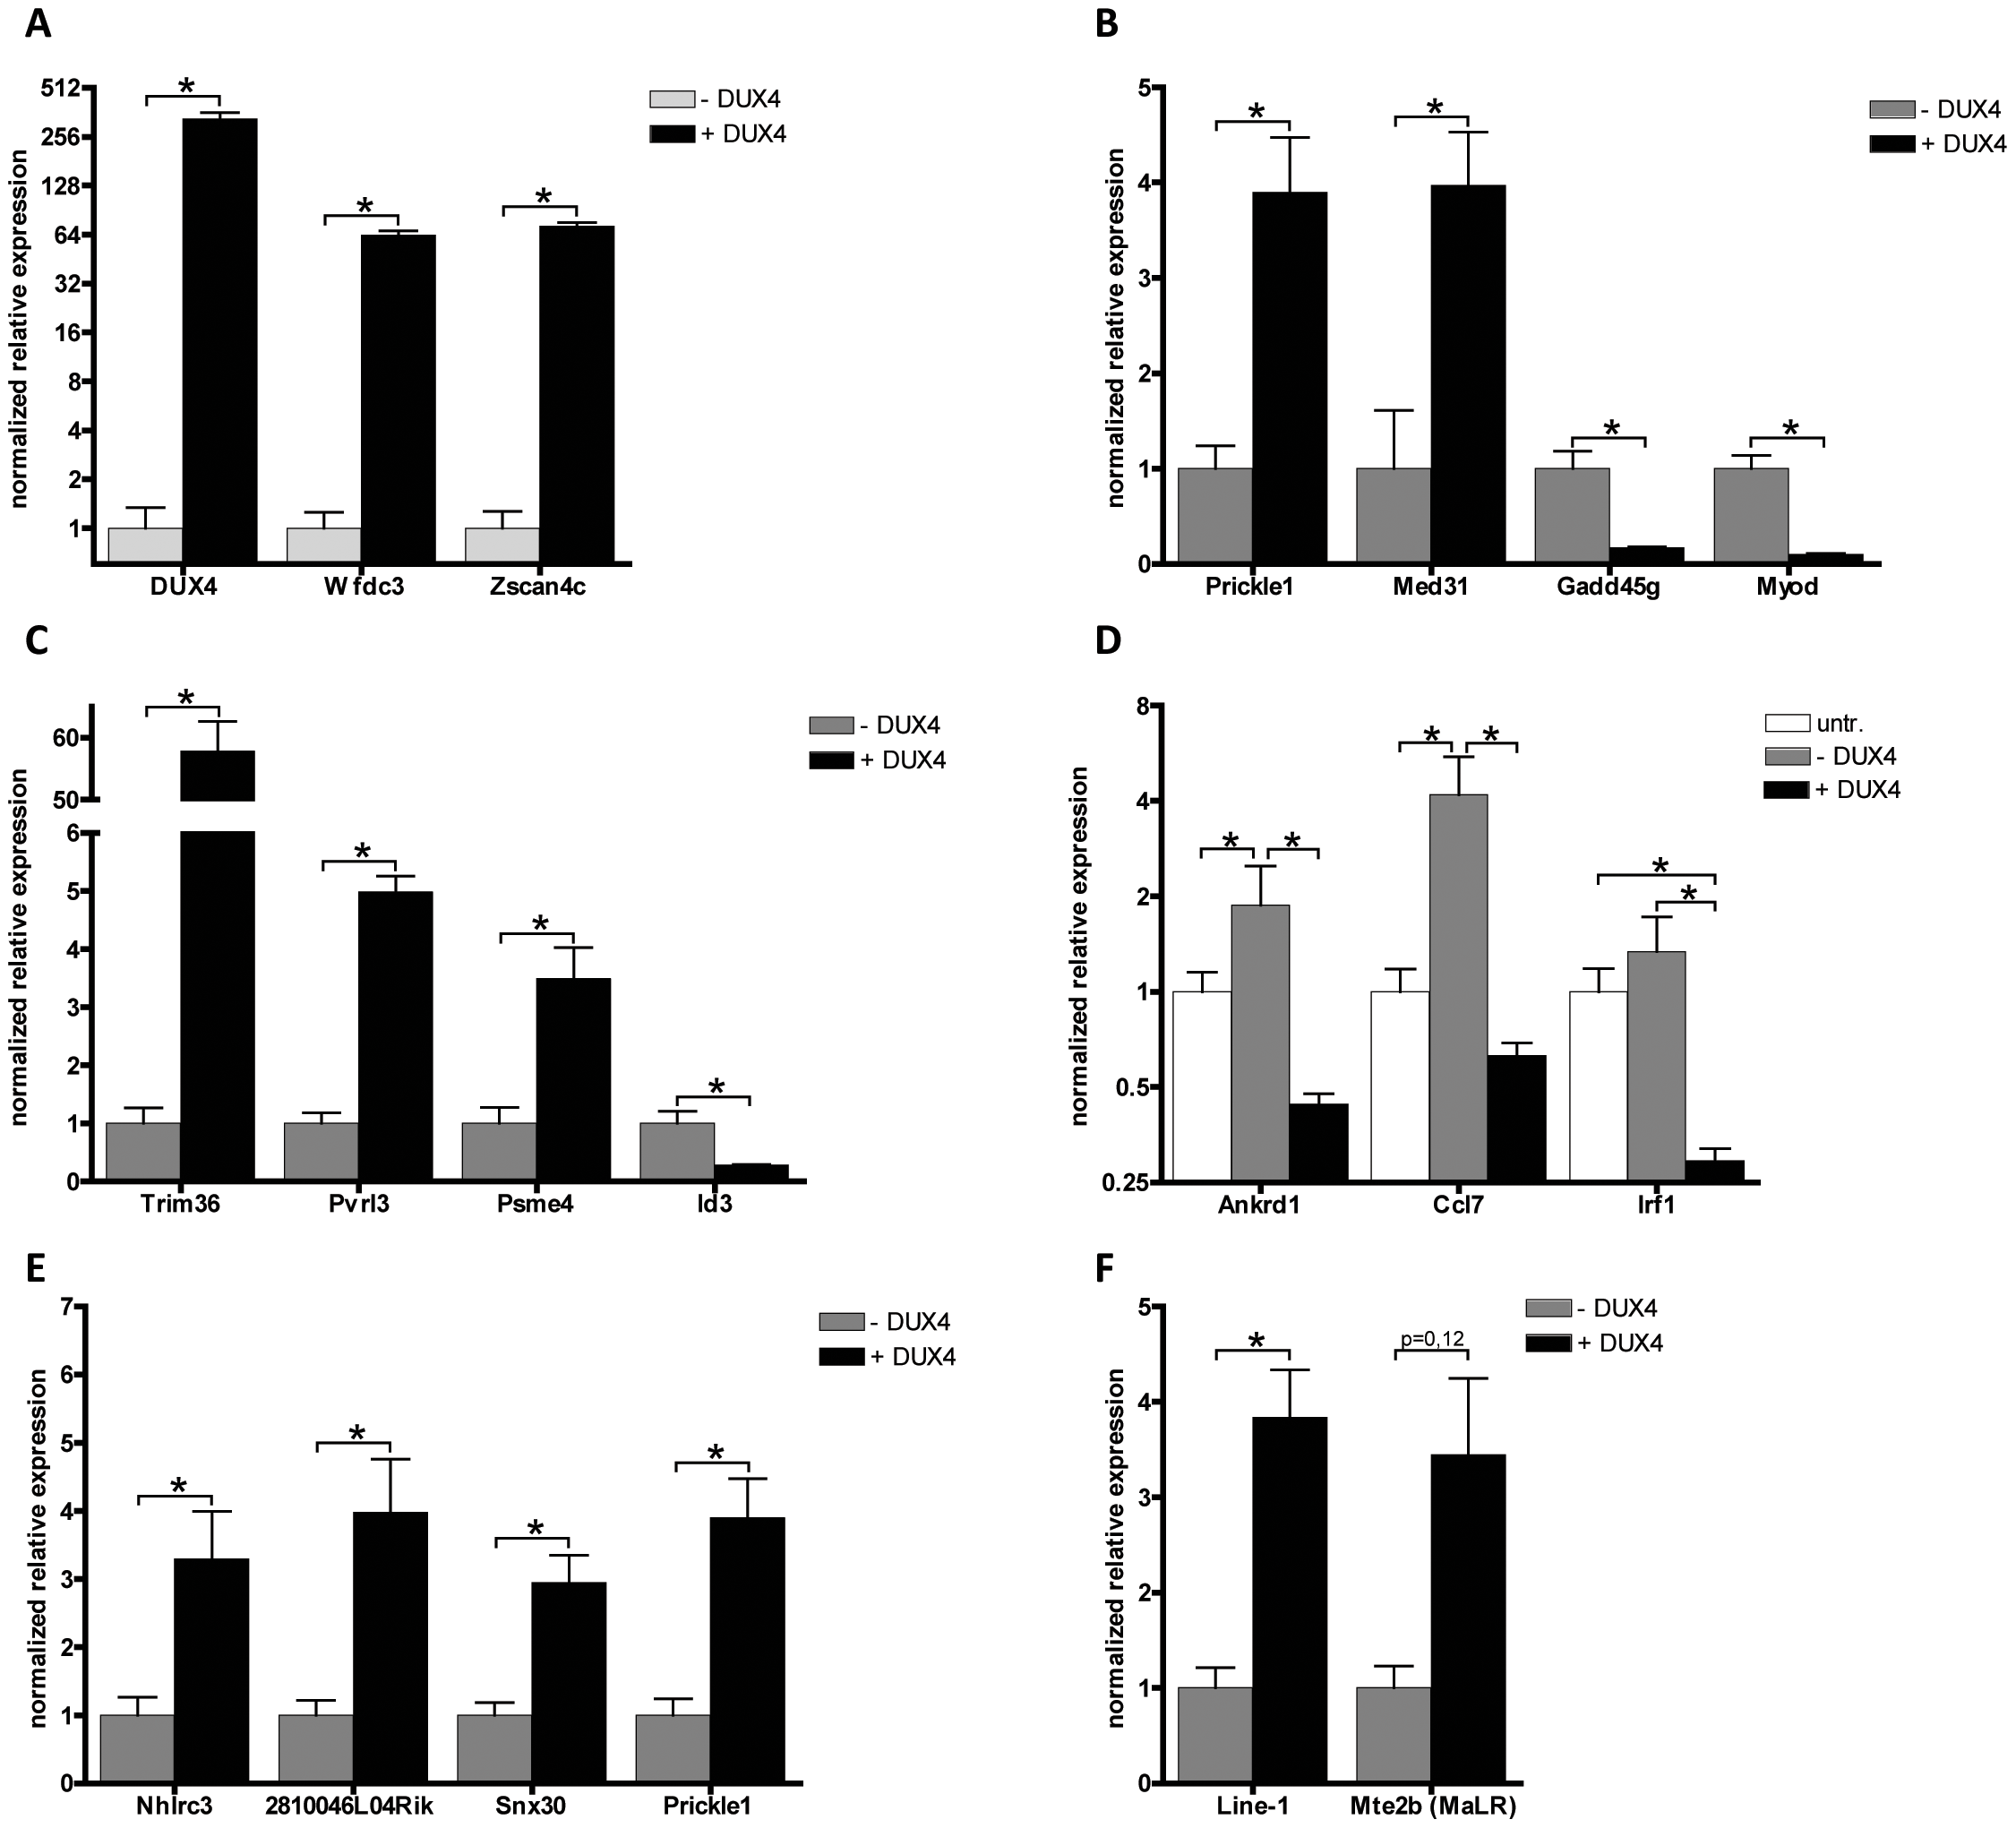 Validation of expression levels of DUX4 deregulated genes in C2C12 myoblasts.